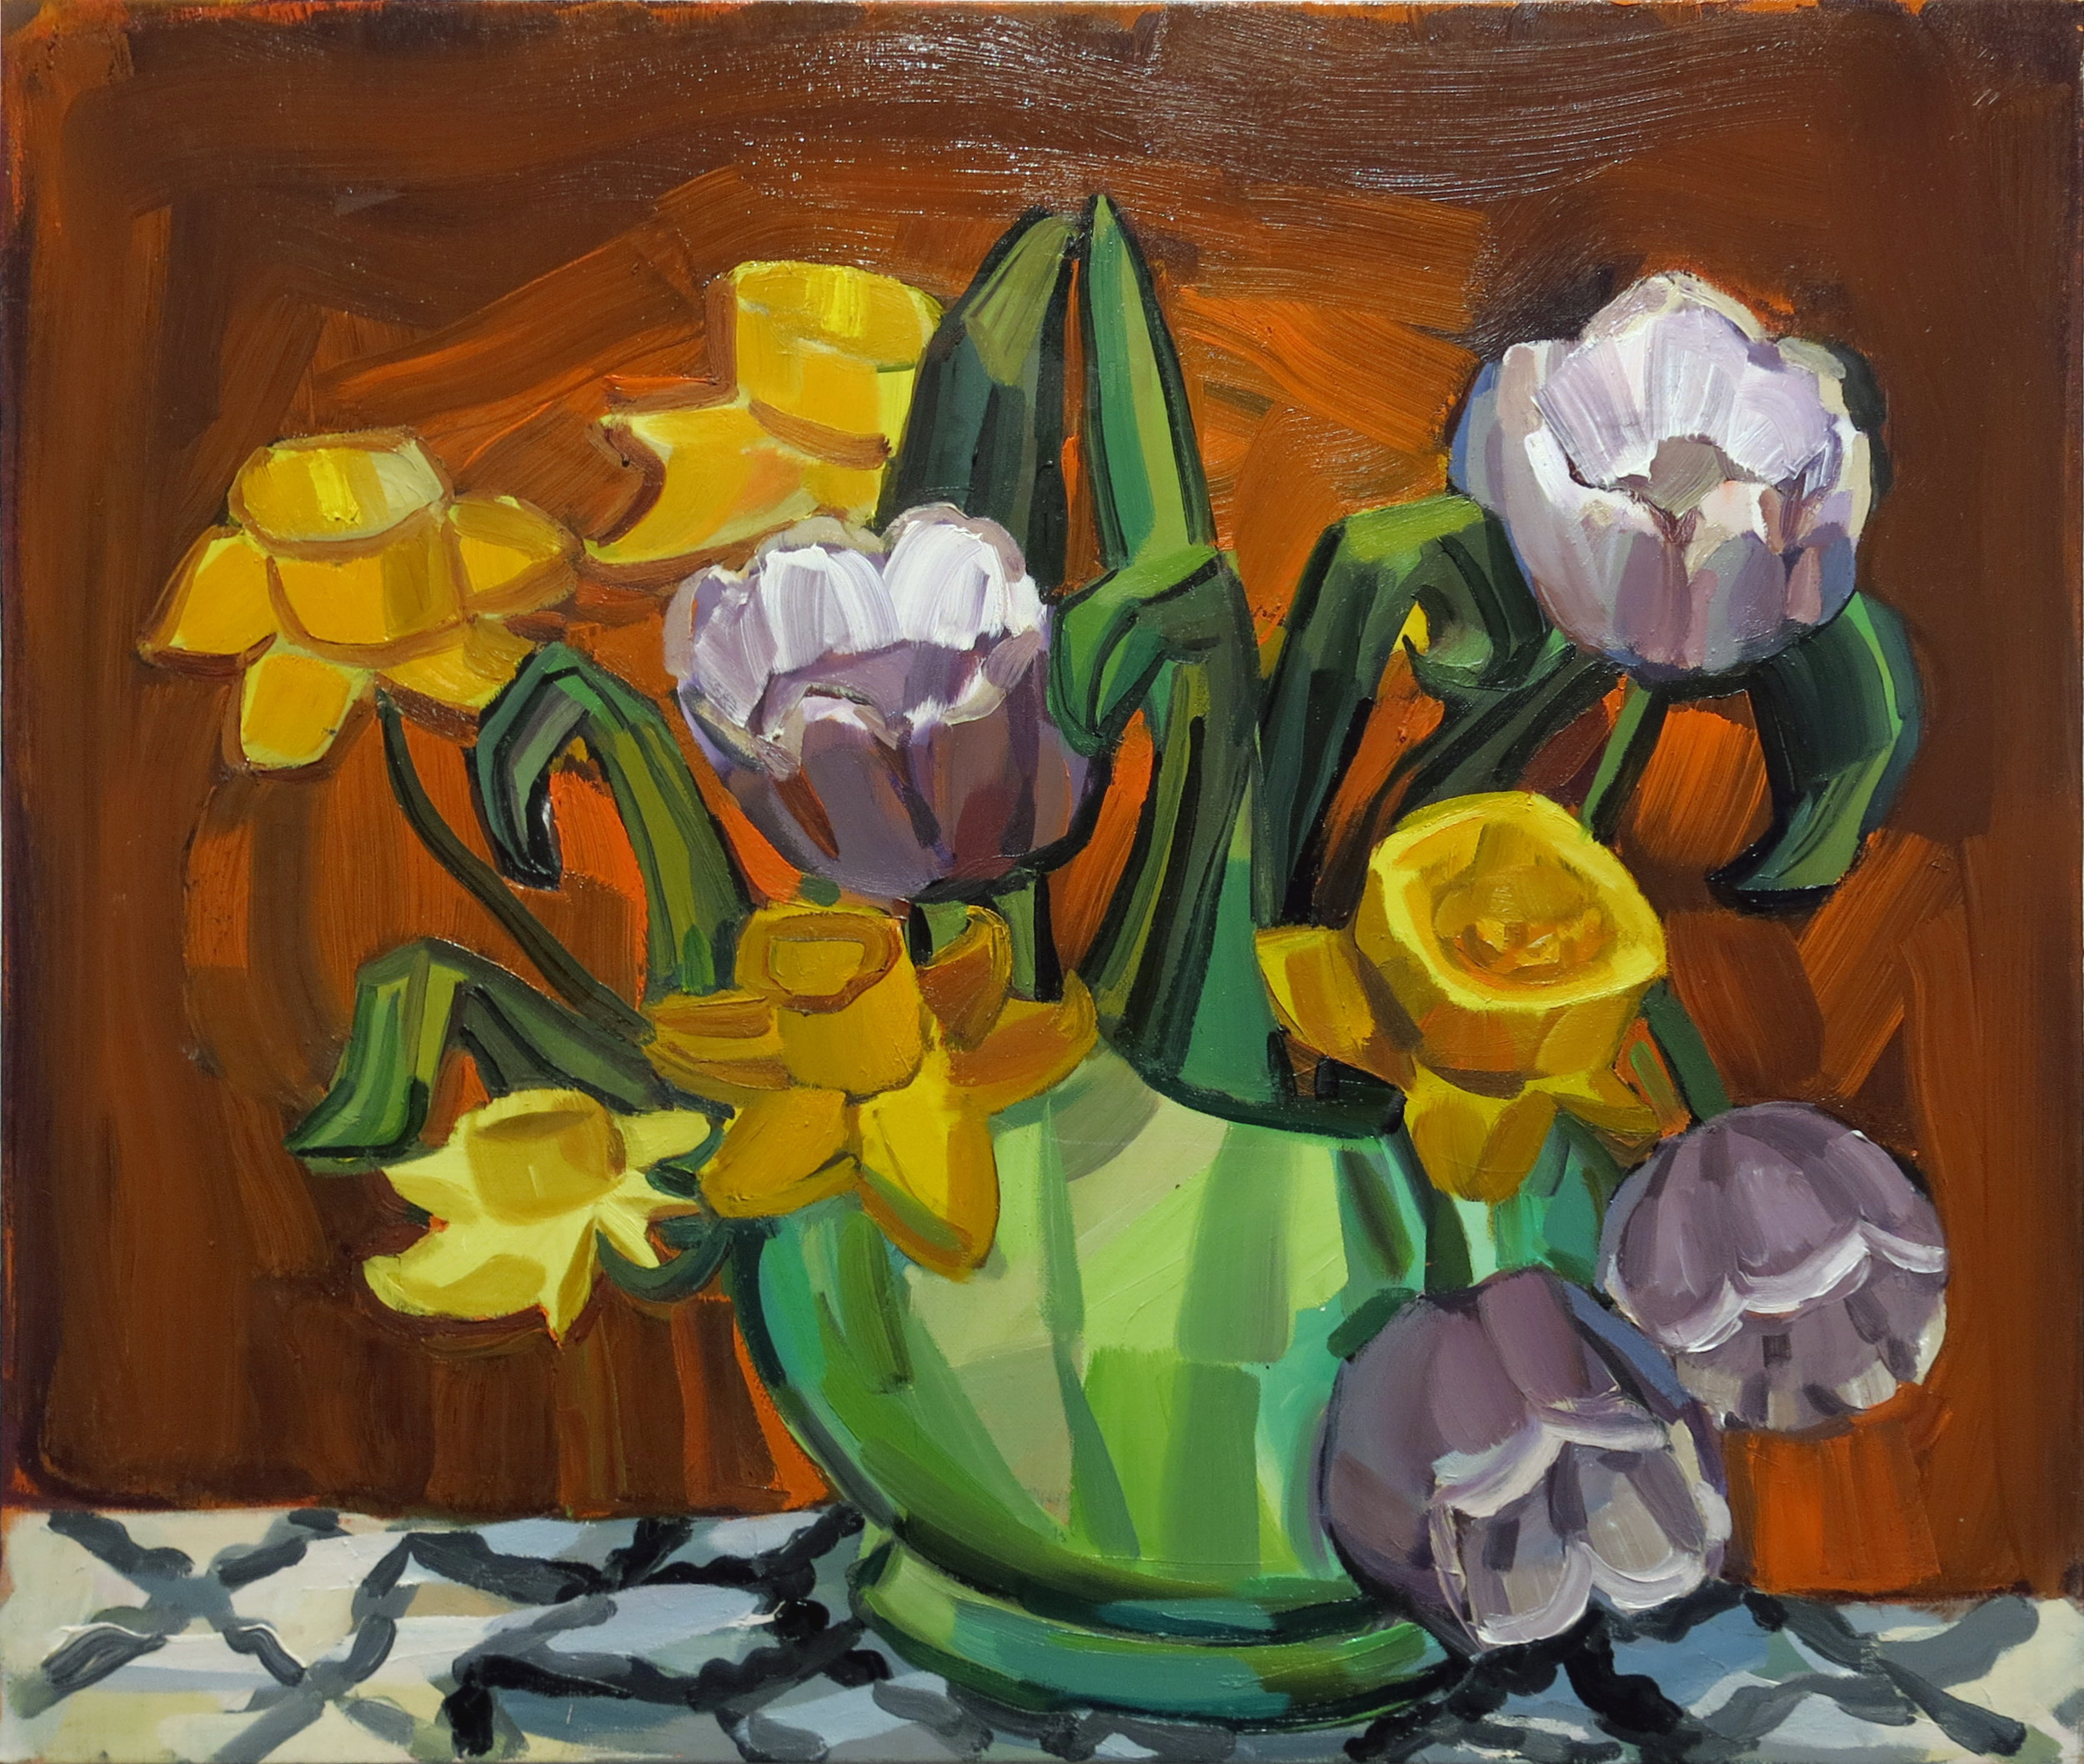 Judith Linhares, April, 2010, Oil on linen, 22h x 26w in.